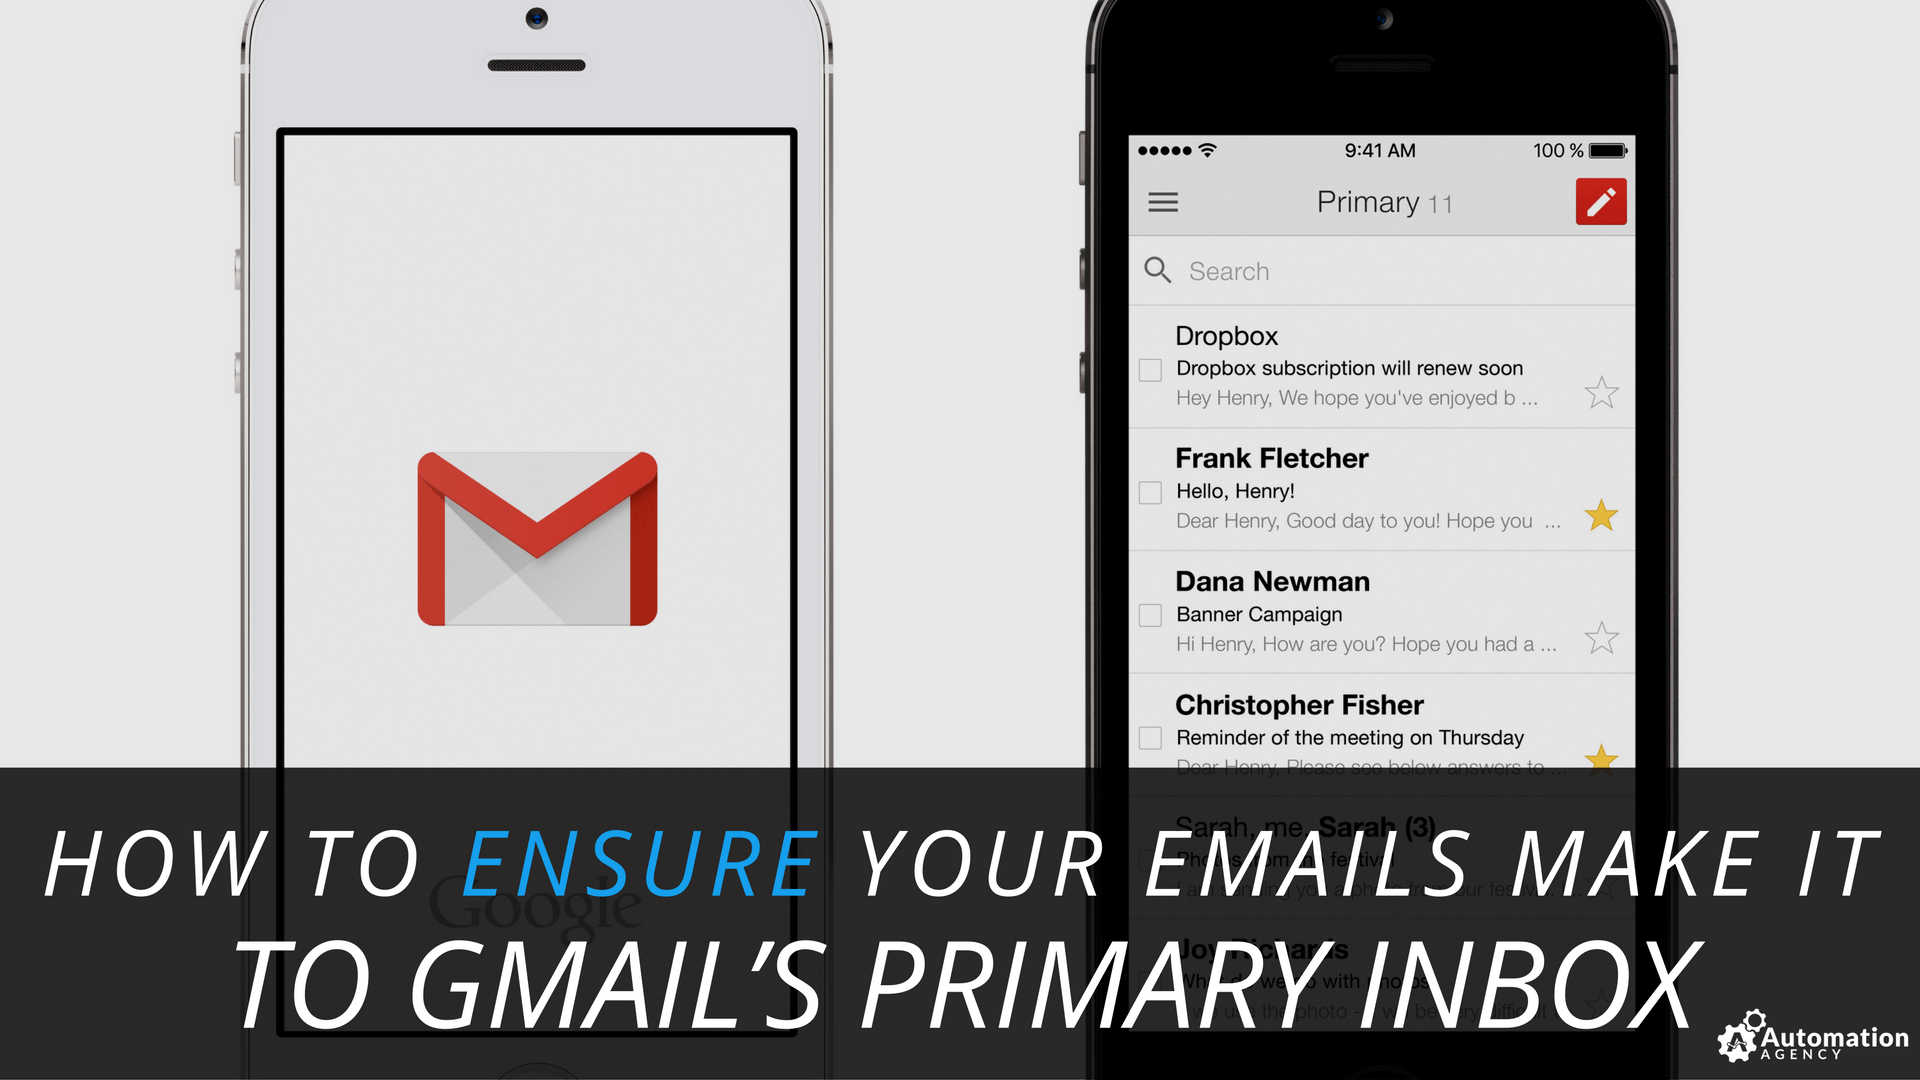 how to ensure your emails make it to gmail's primary inbox